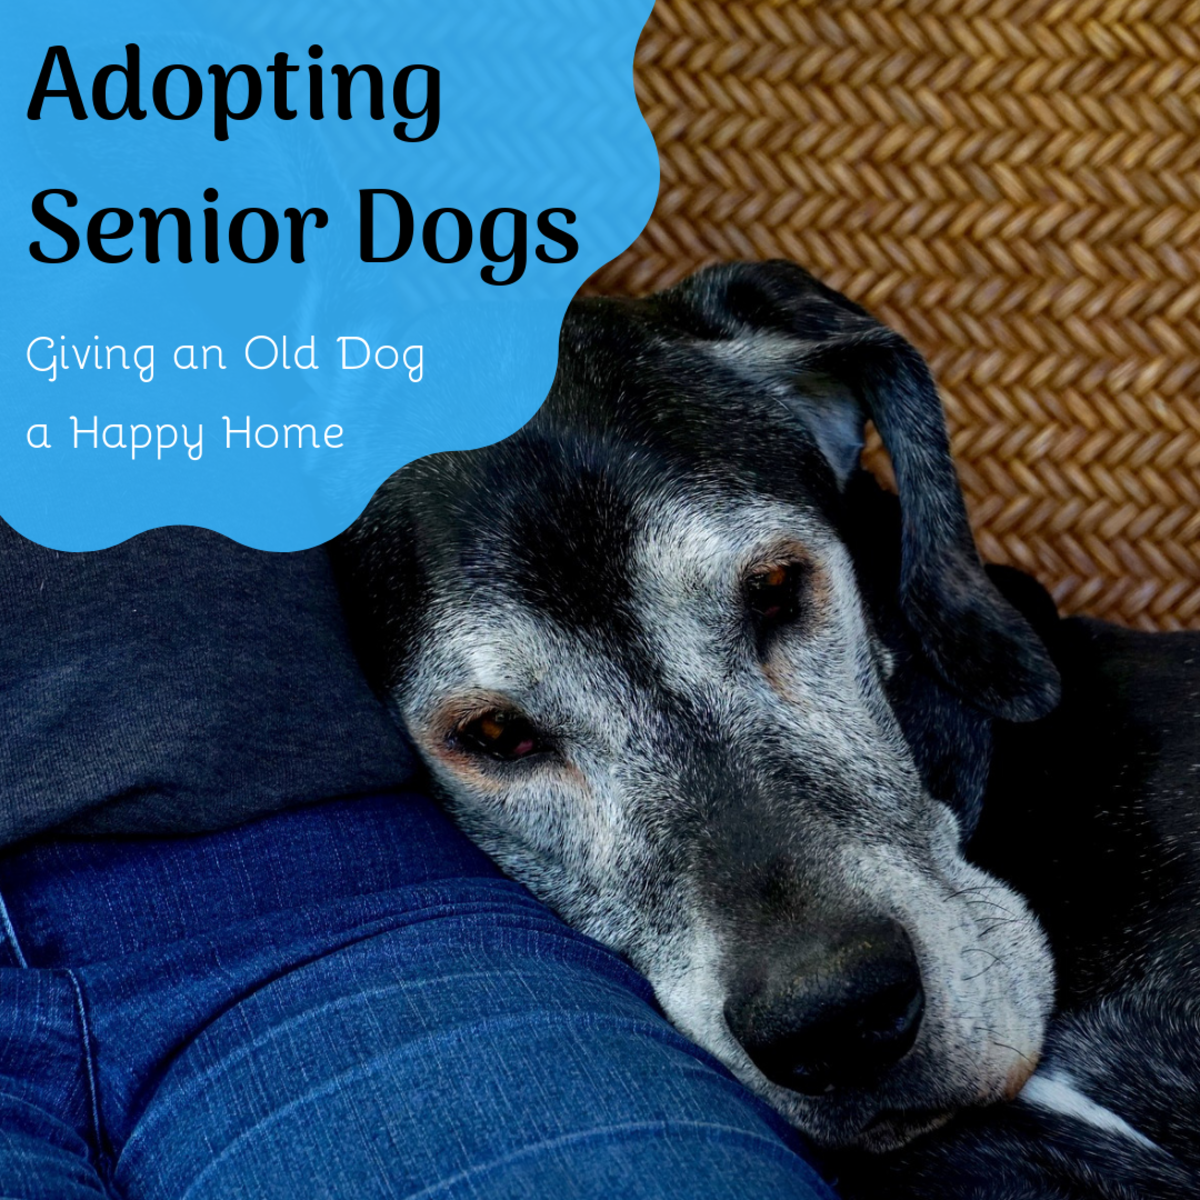 Read about some of the benefits of adopting an older rescue dog.